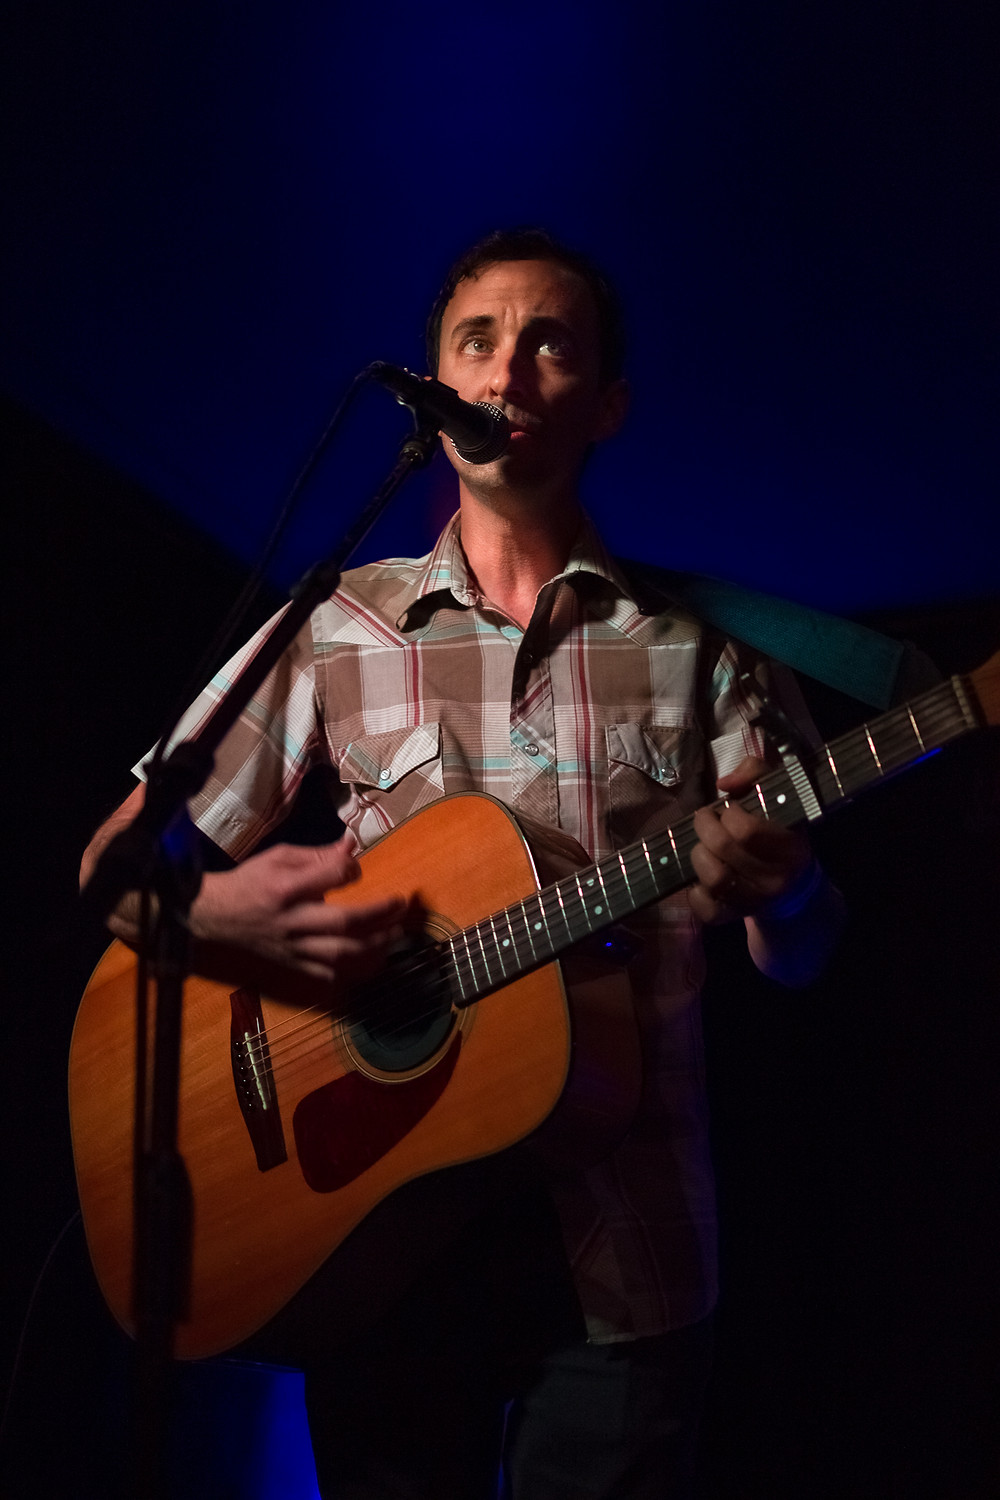 Reubens Accomplice, The Wayfarer, Costa Mesa, Acoustic, Concert, Concert Photography, Live Music, Chris Corak